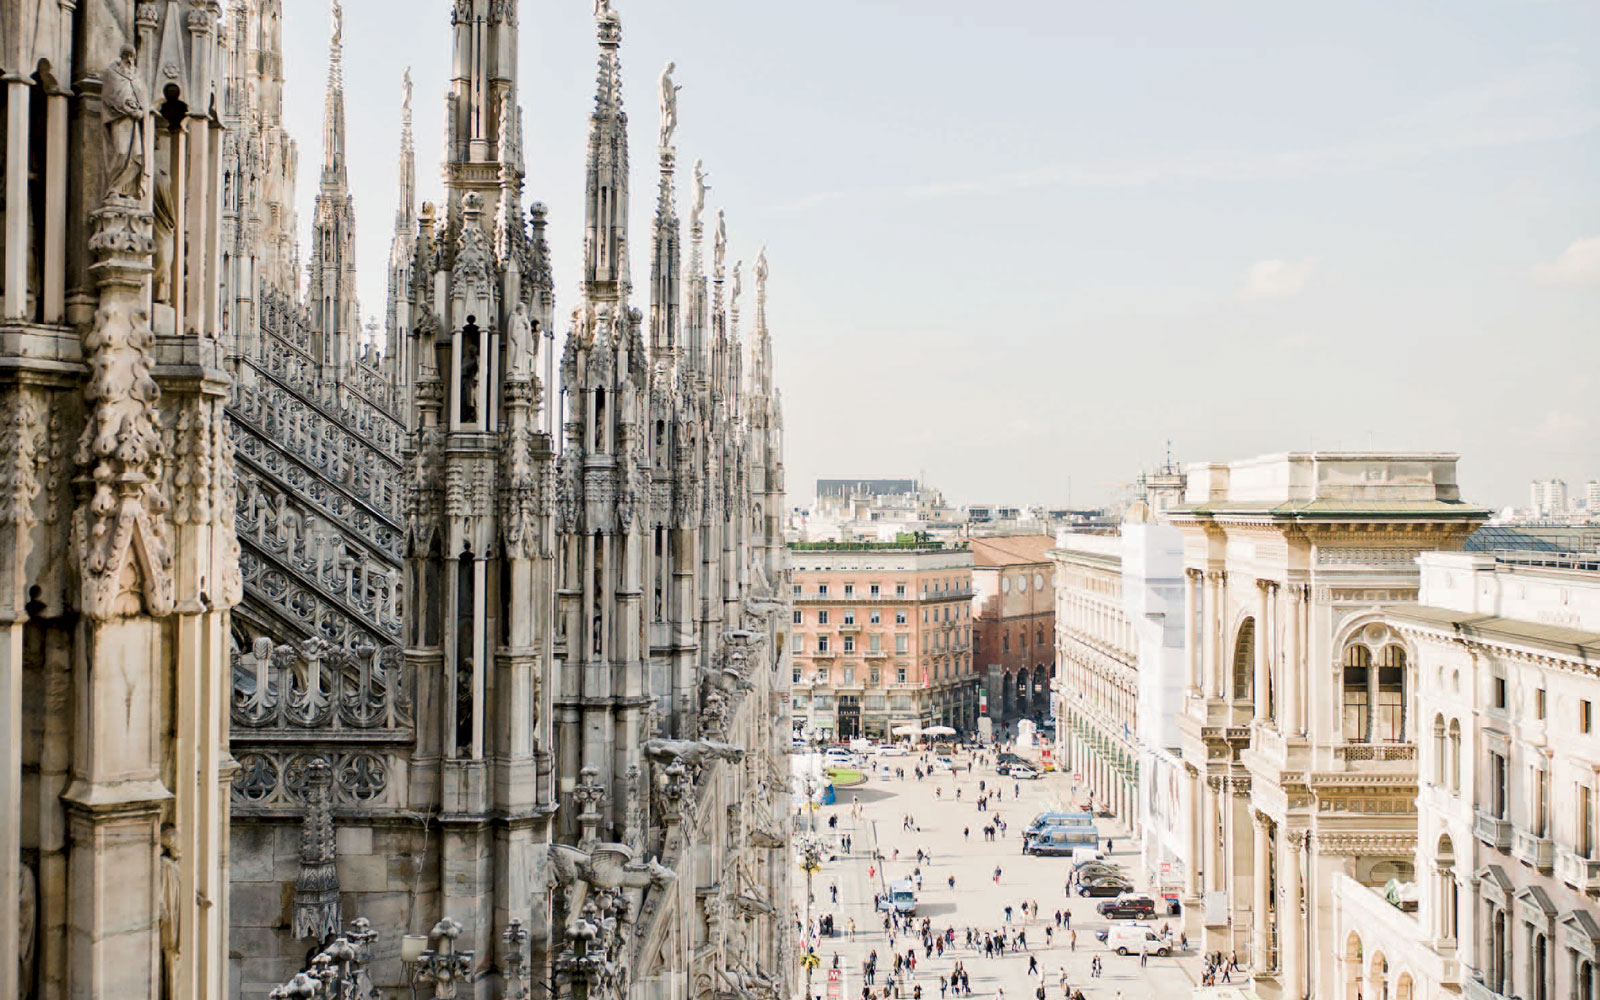 Top 5 Best Galleries and Museums in Milan